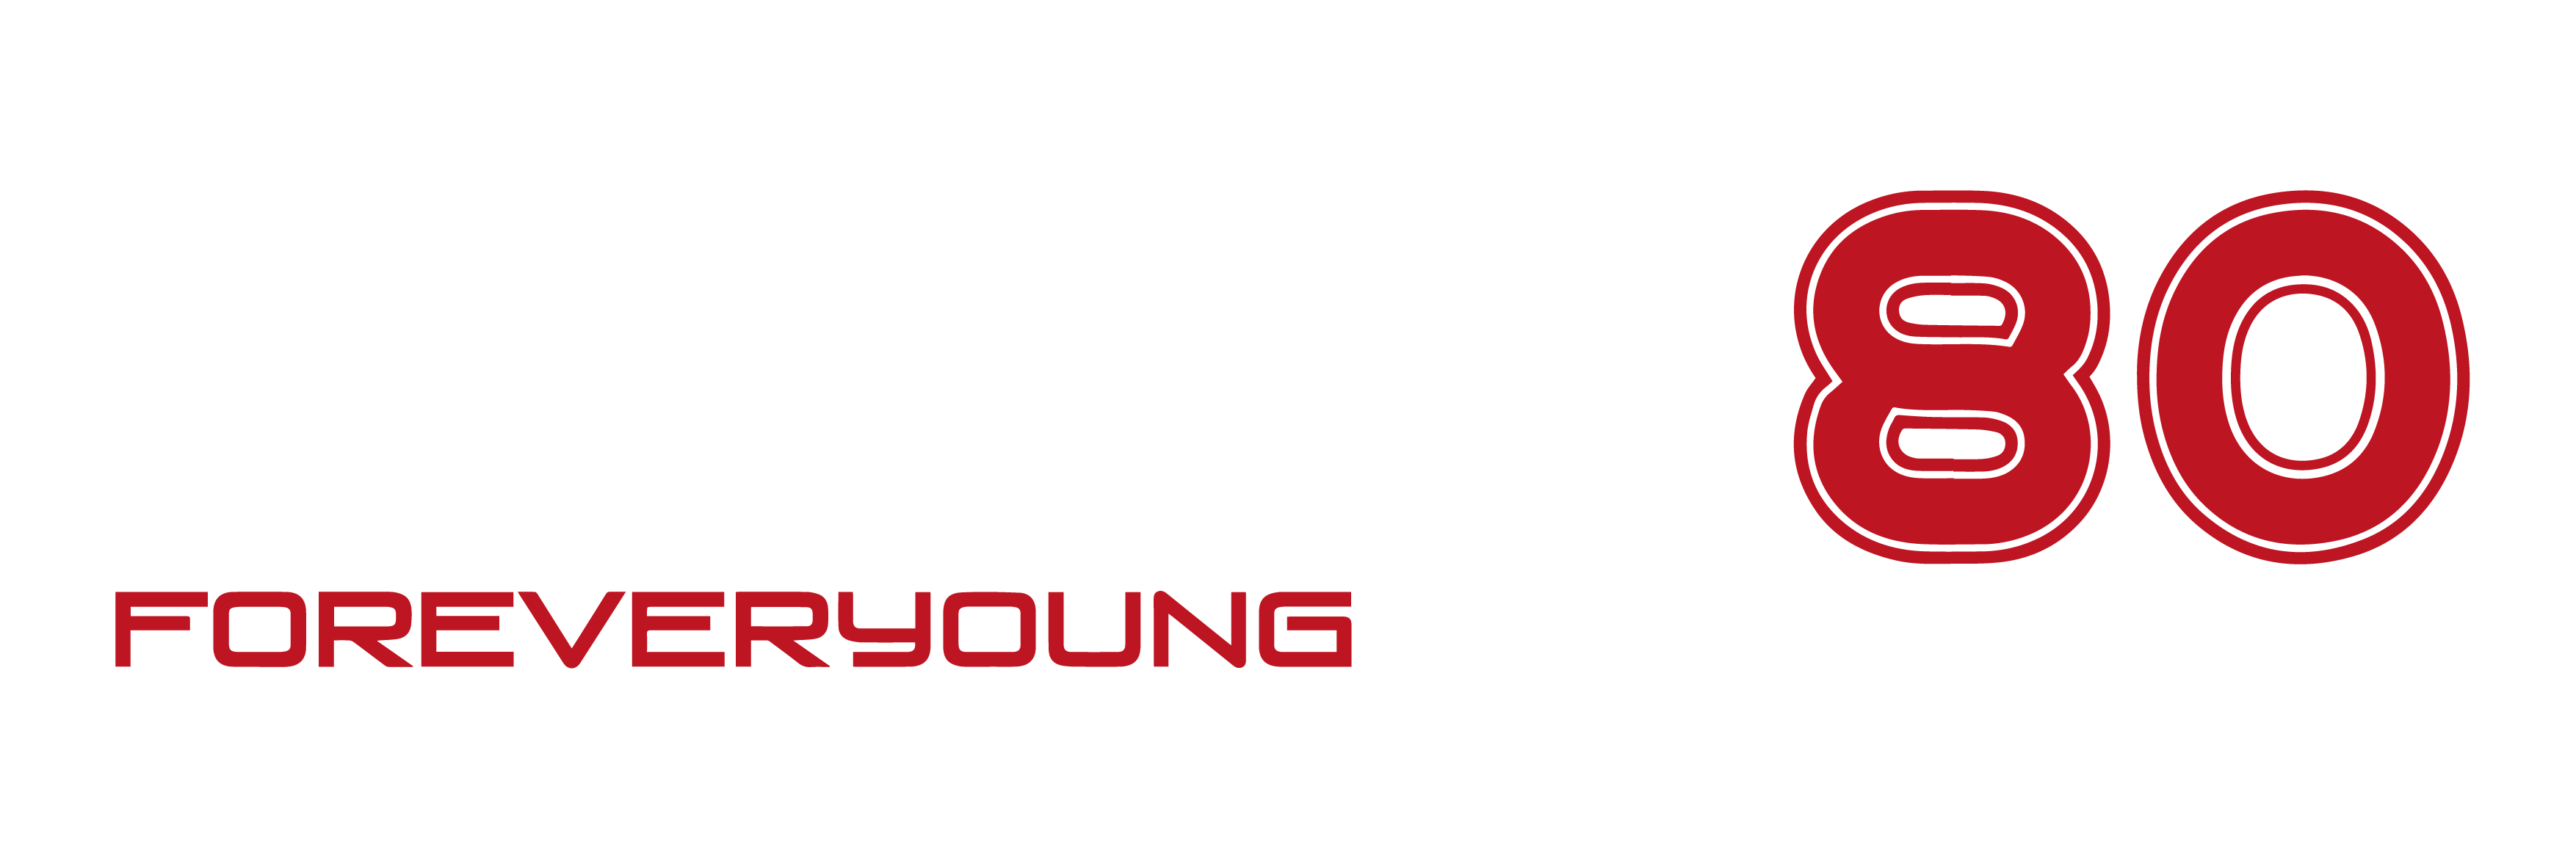 Profilo Radio 80 TV Forever Young Canale Tv